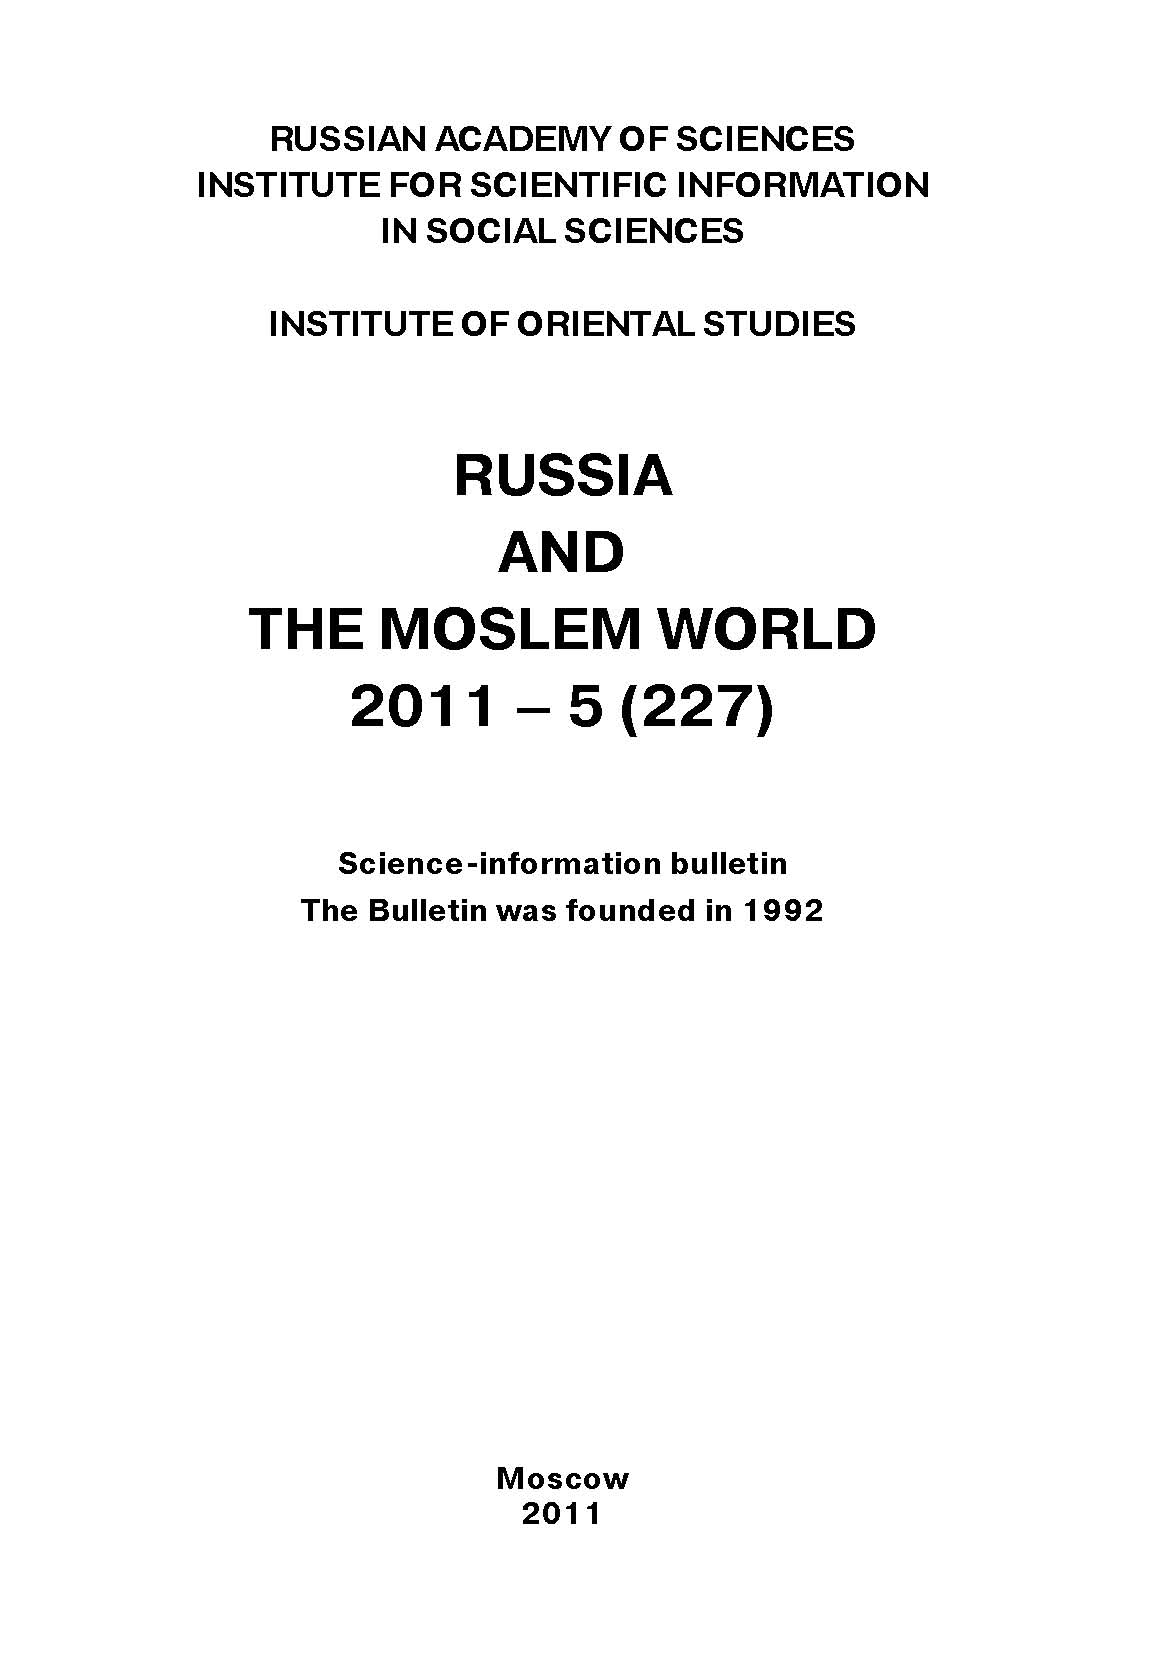 Сборник статей Russia and the Moslem World № 05 / 2011 сборник статей russia and the moslem world 04 2011